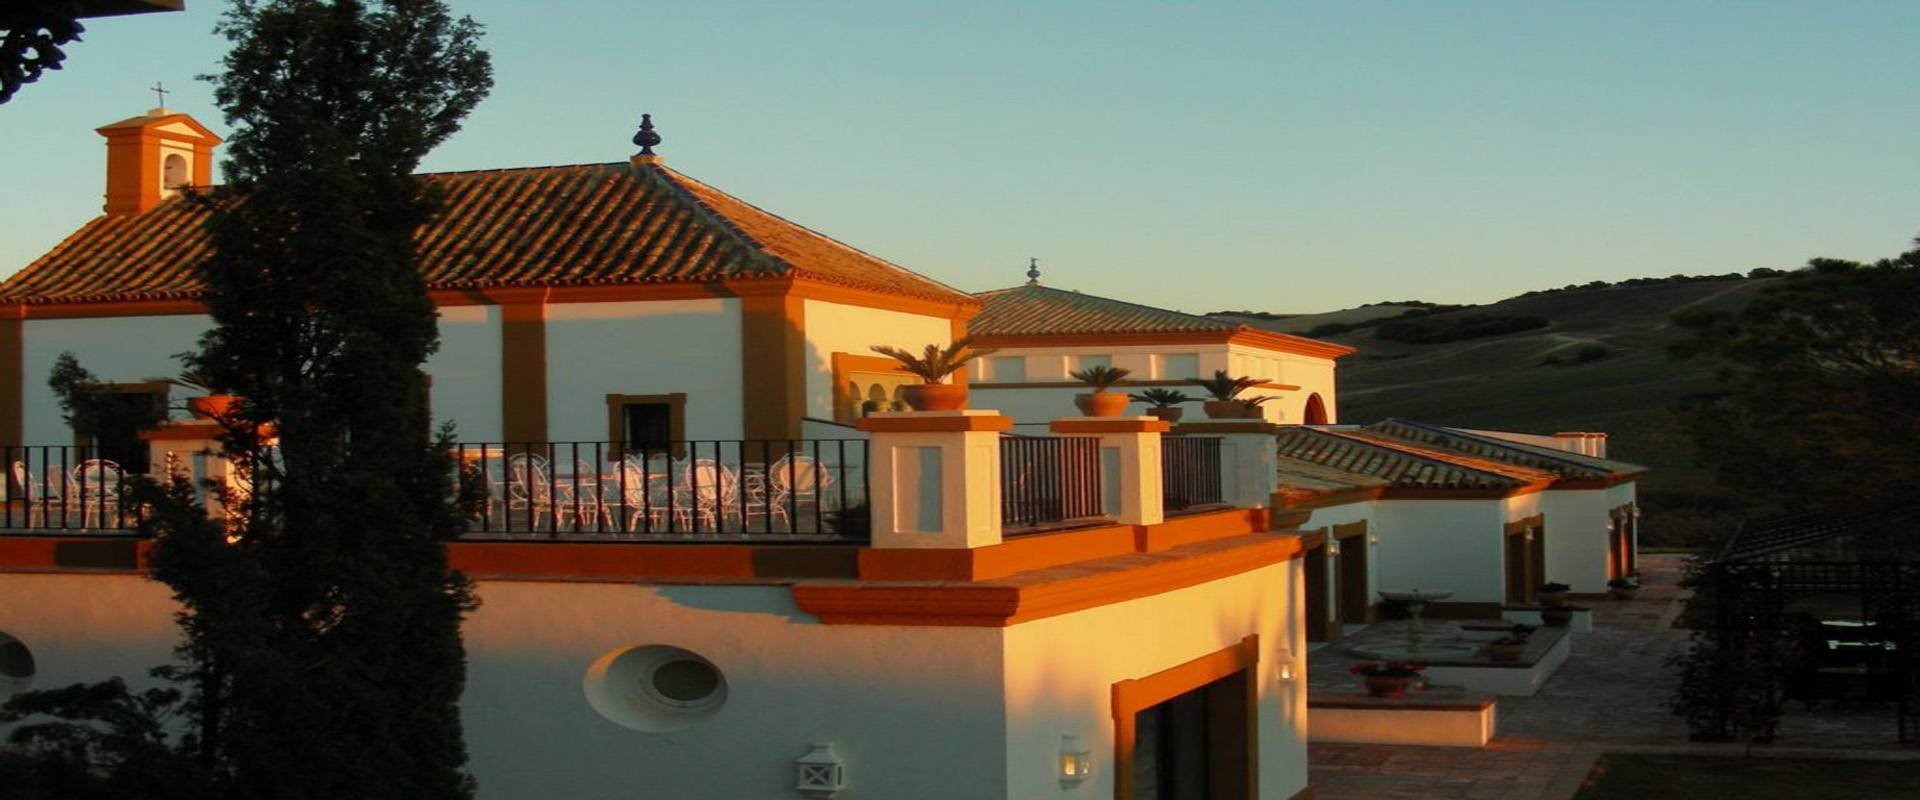 Hotel Cortijo Soto Real Luxurious Tranquillity within Andalusian Nature